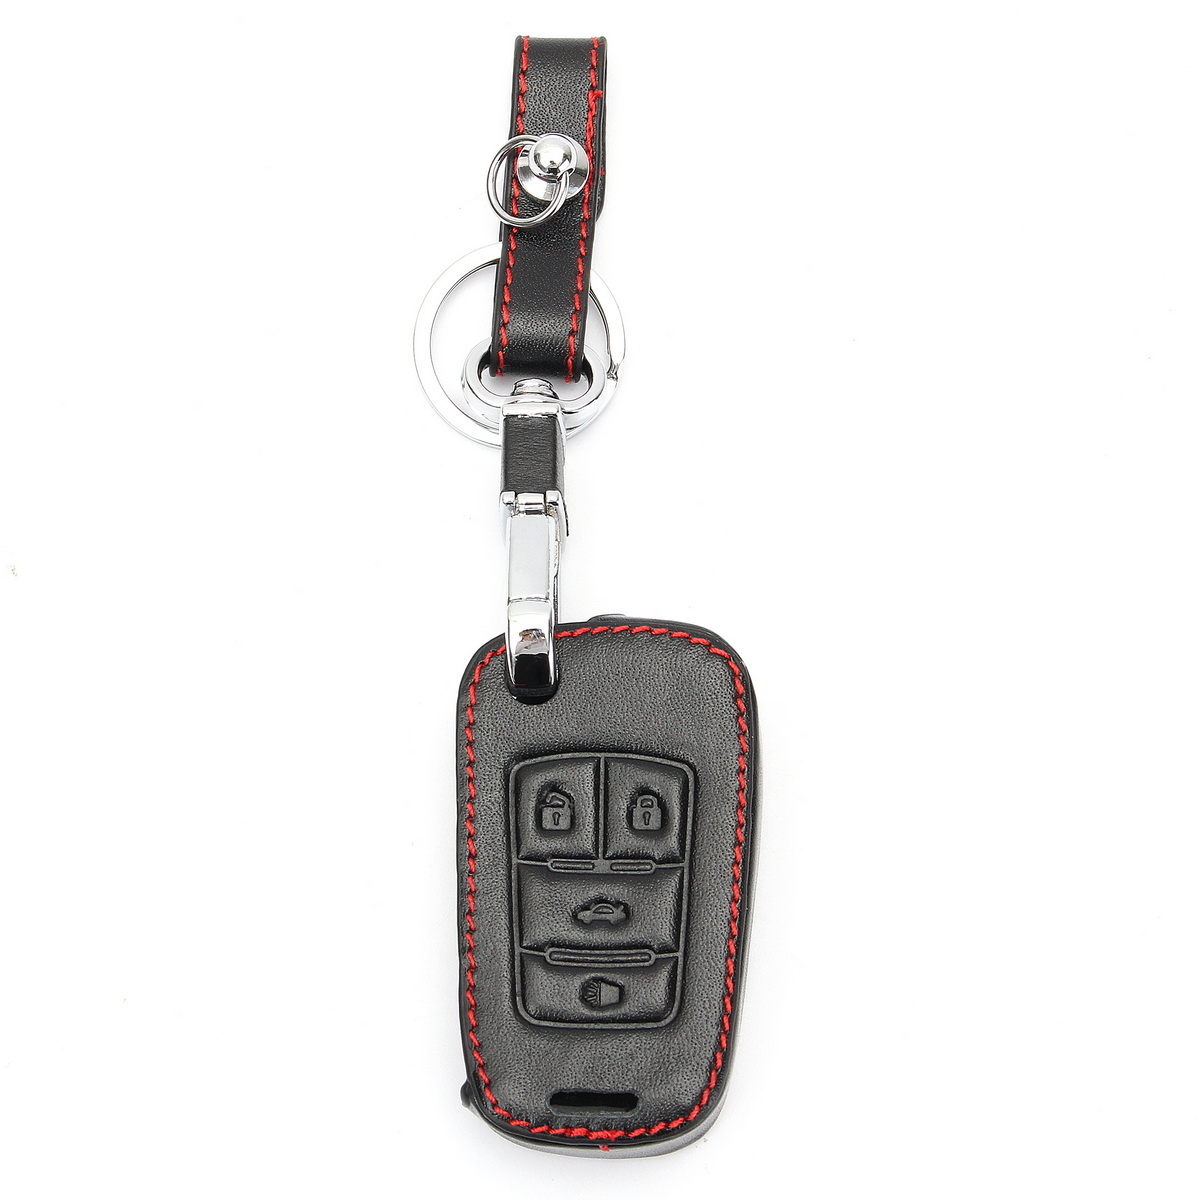 4 Buttons Car Remote Fold Key Fob Chain Cover Holder for Chevrolet